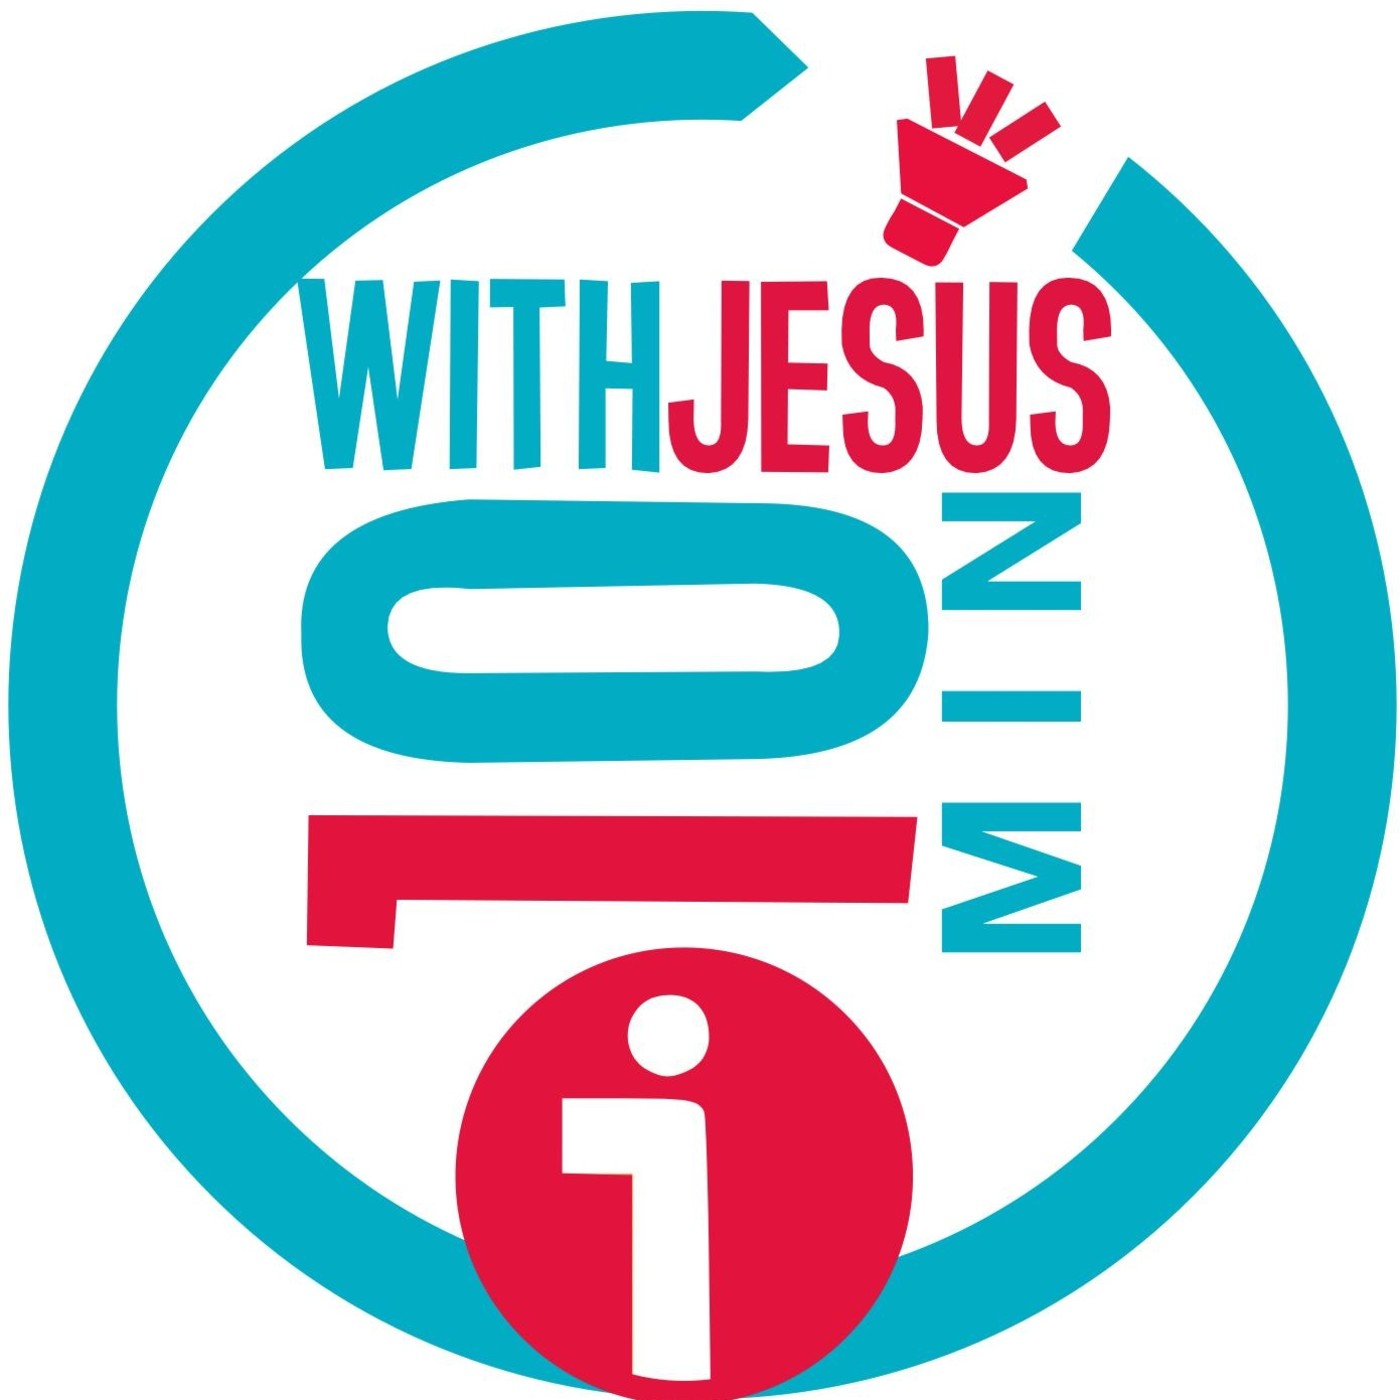 21-10-2020 Watch Carefully! - 10 Minutes with Jesus